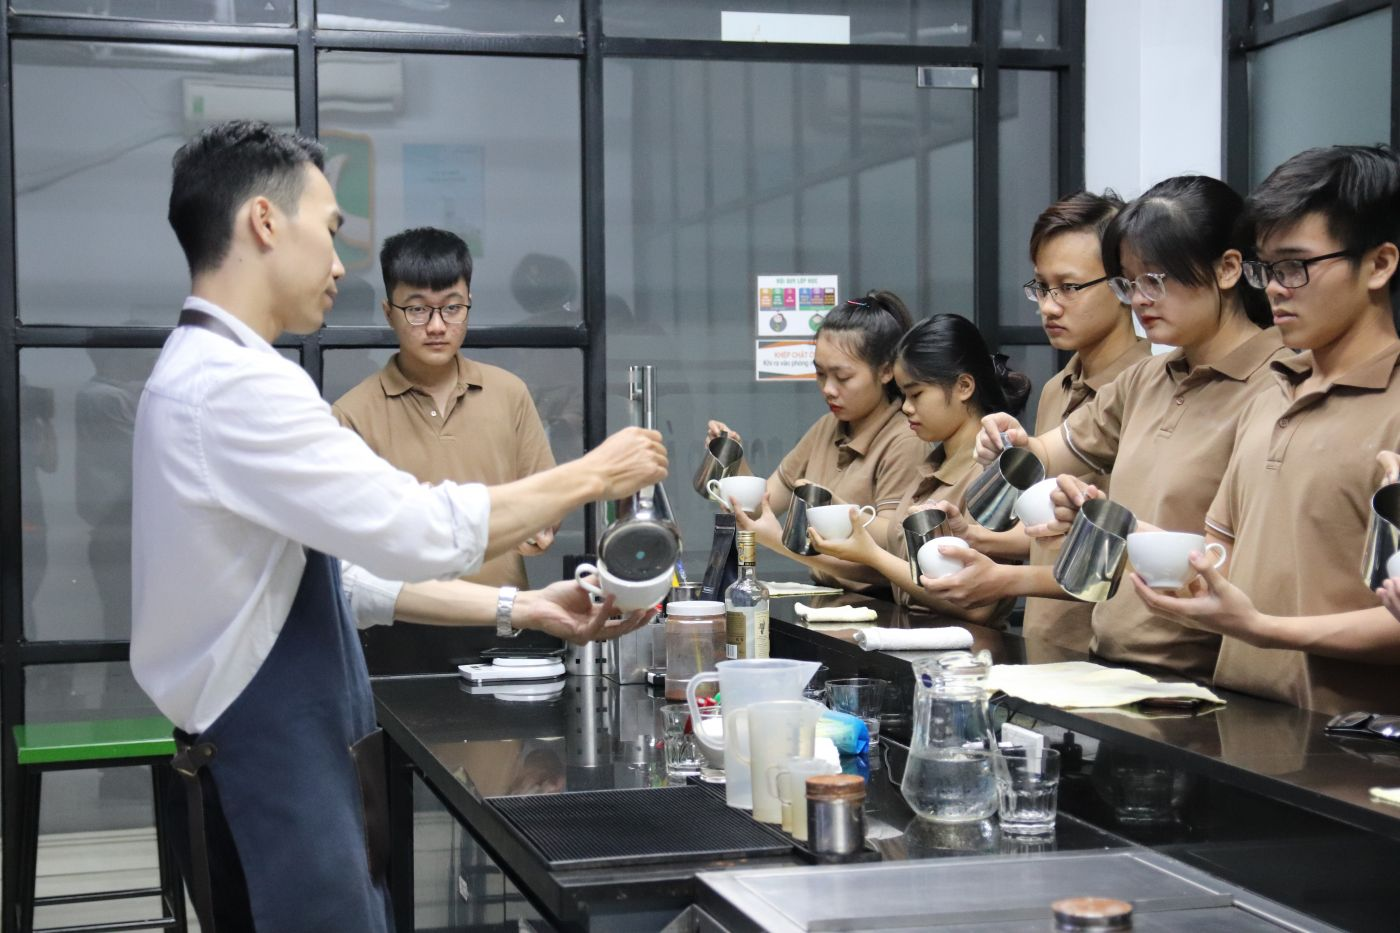 Group of vietnamese students learning to make a coffee